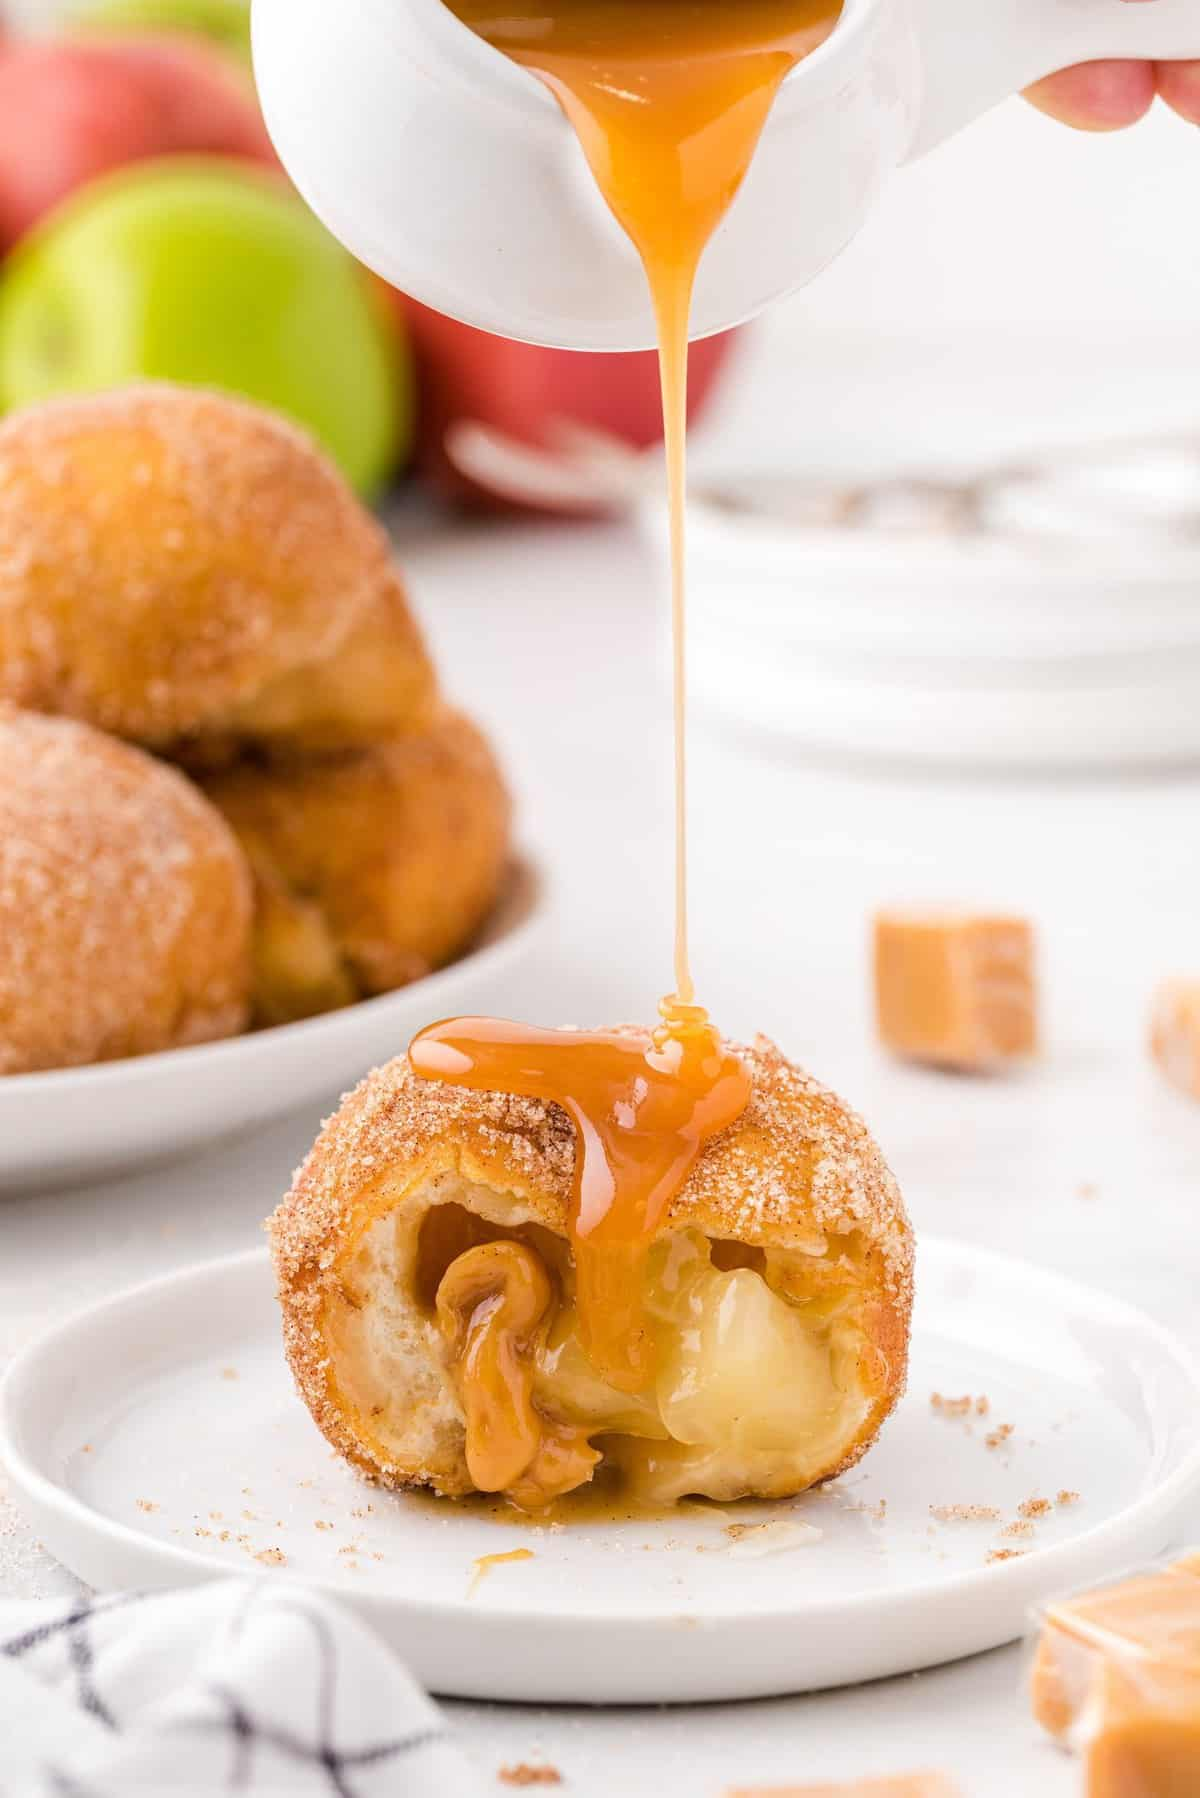 caramel poured on top of the apple pie bombs